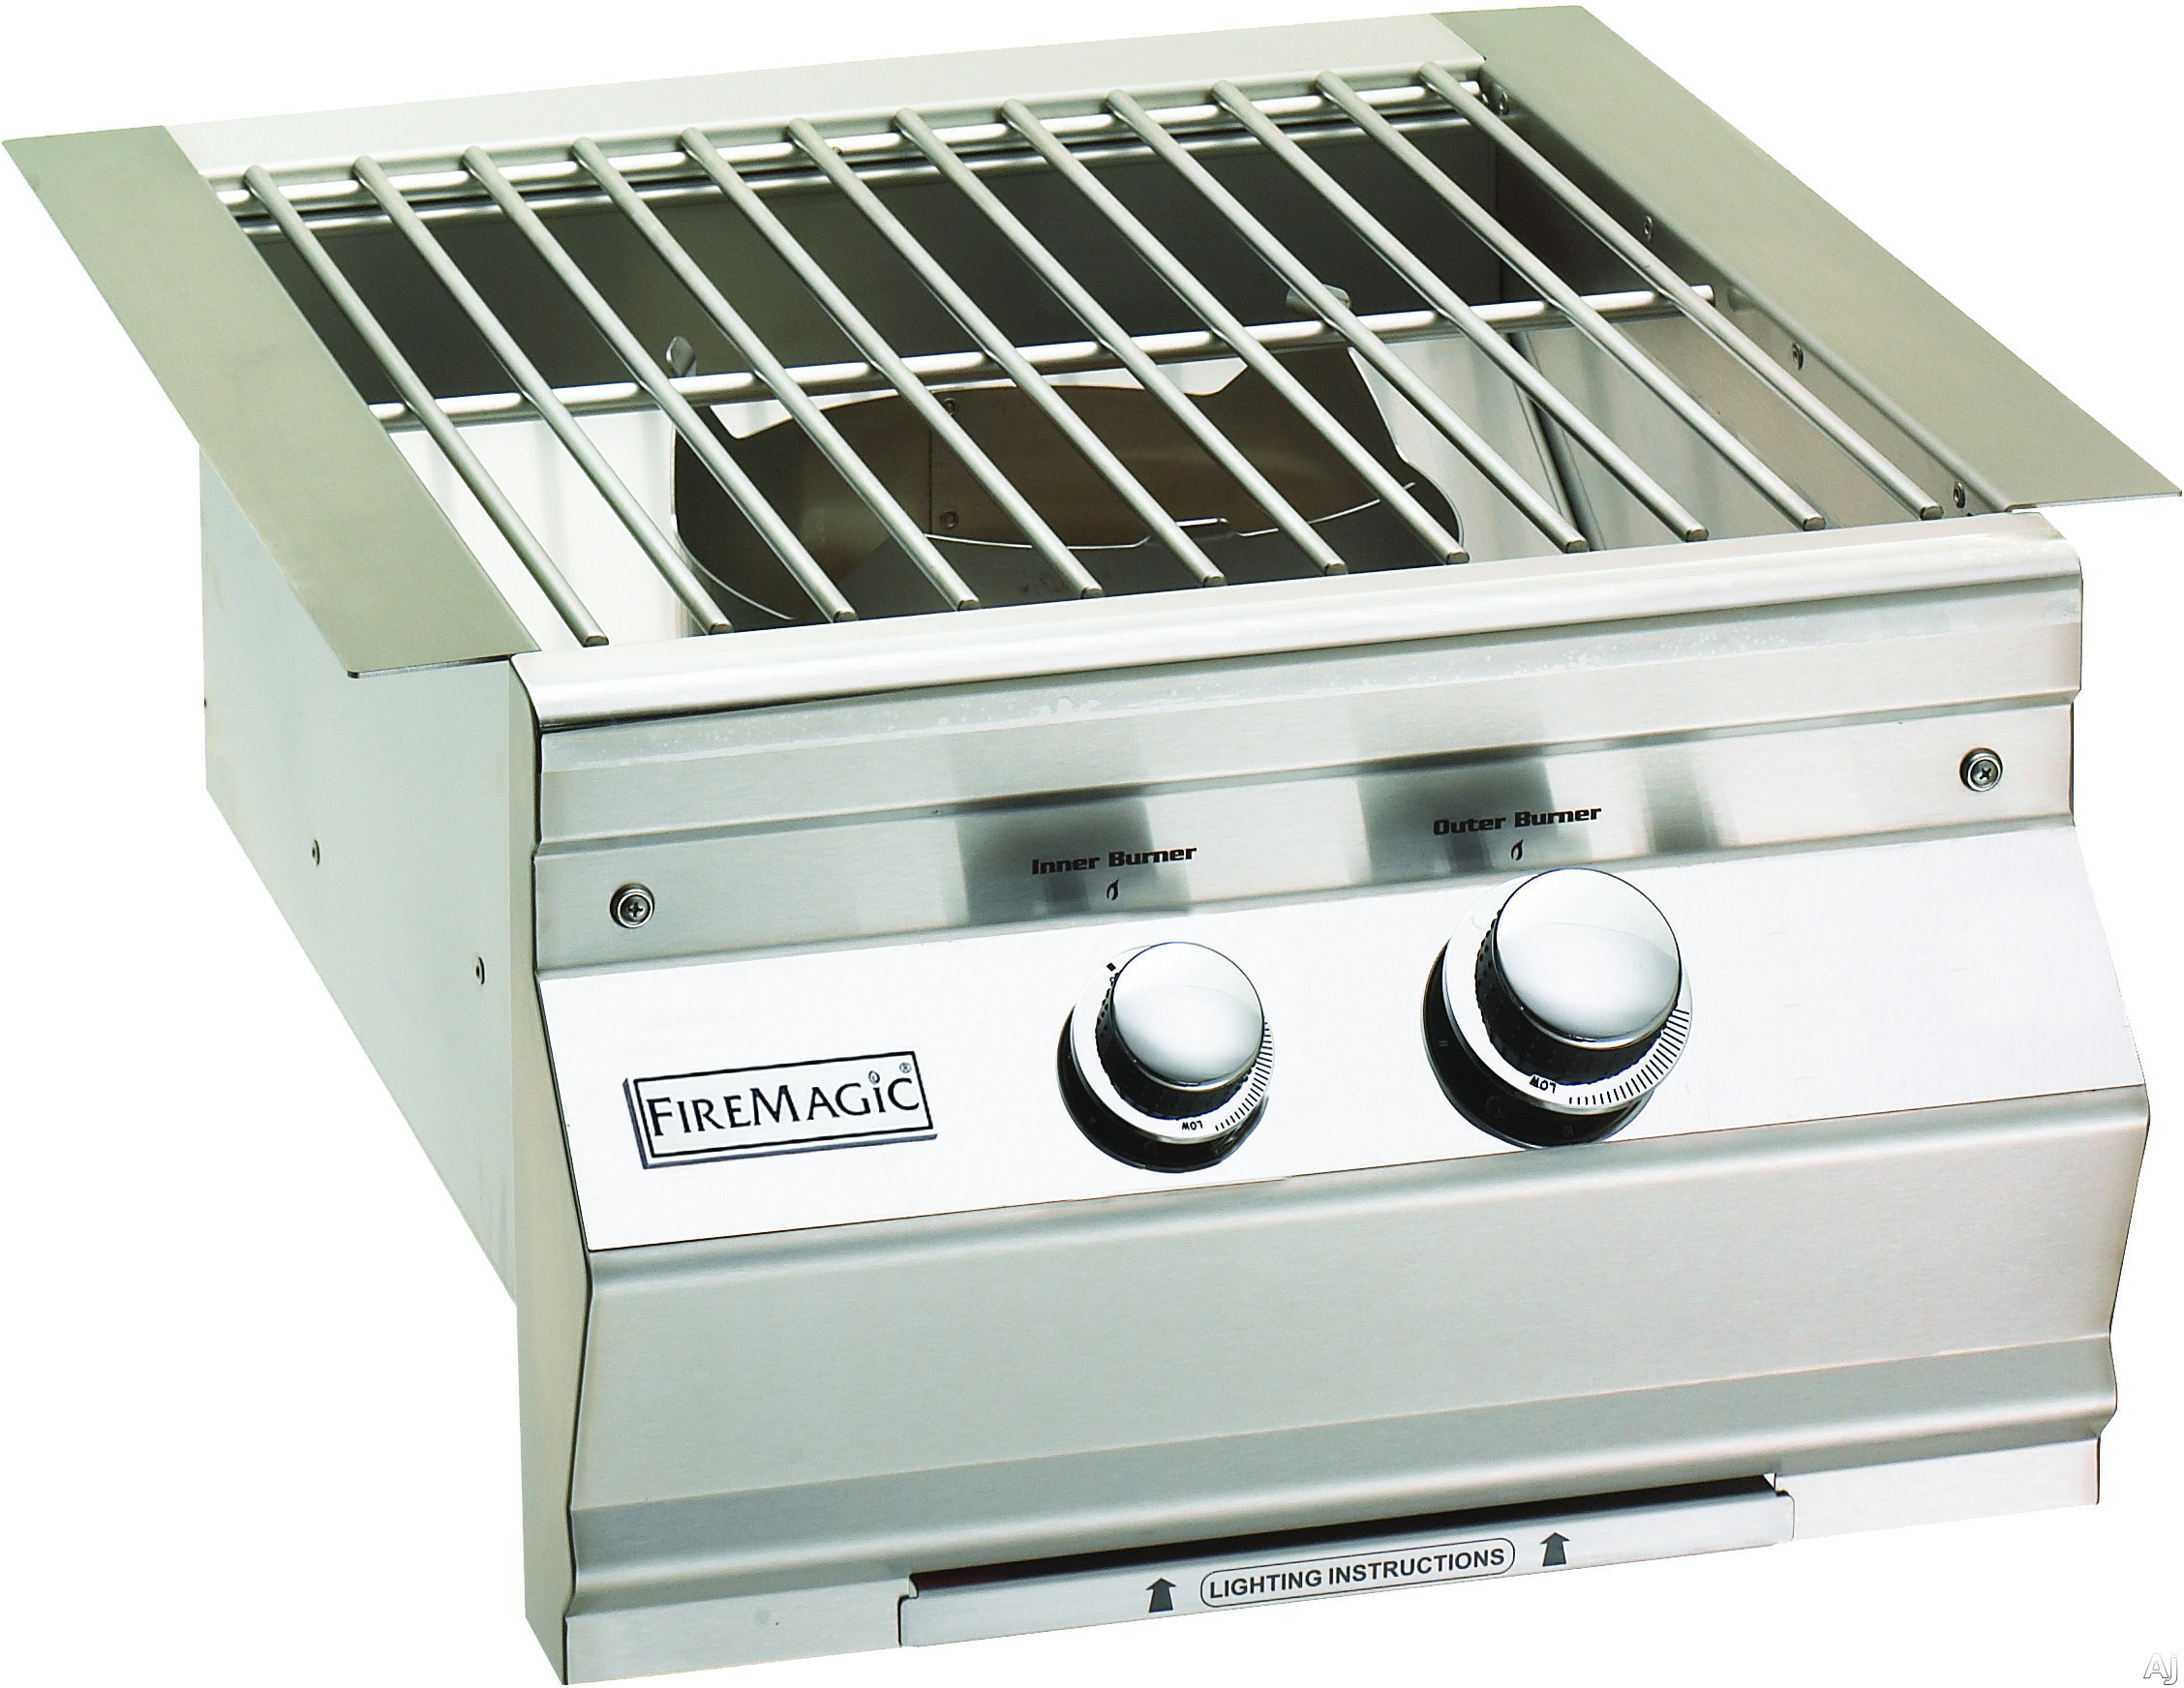 Fire Magic Aurora Collection 19S0B1P0 19 Inch Built-in Power Burner with 60,000 BTU, Cast Brass Burner, Stainless Steel Grid and Electronic Ignition: Liquid Propane, Stainless Steel Grid